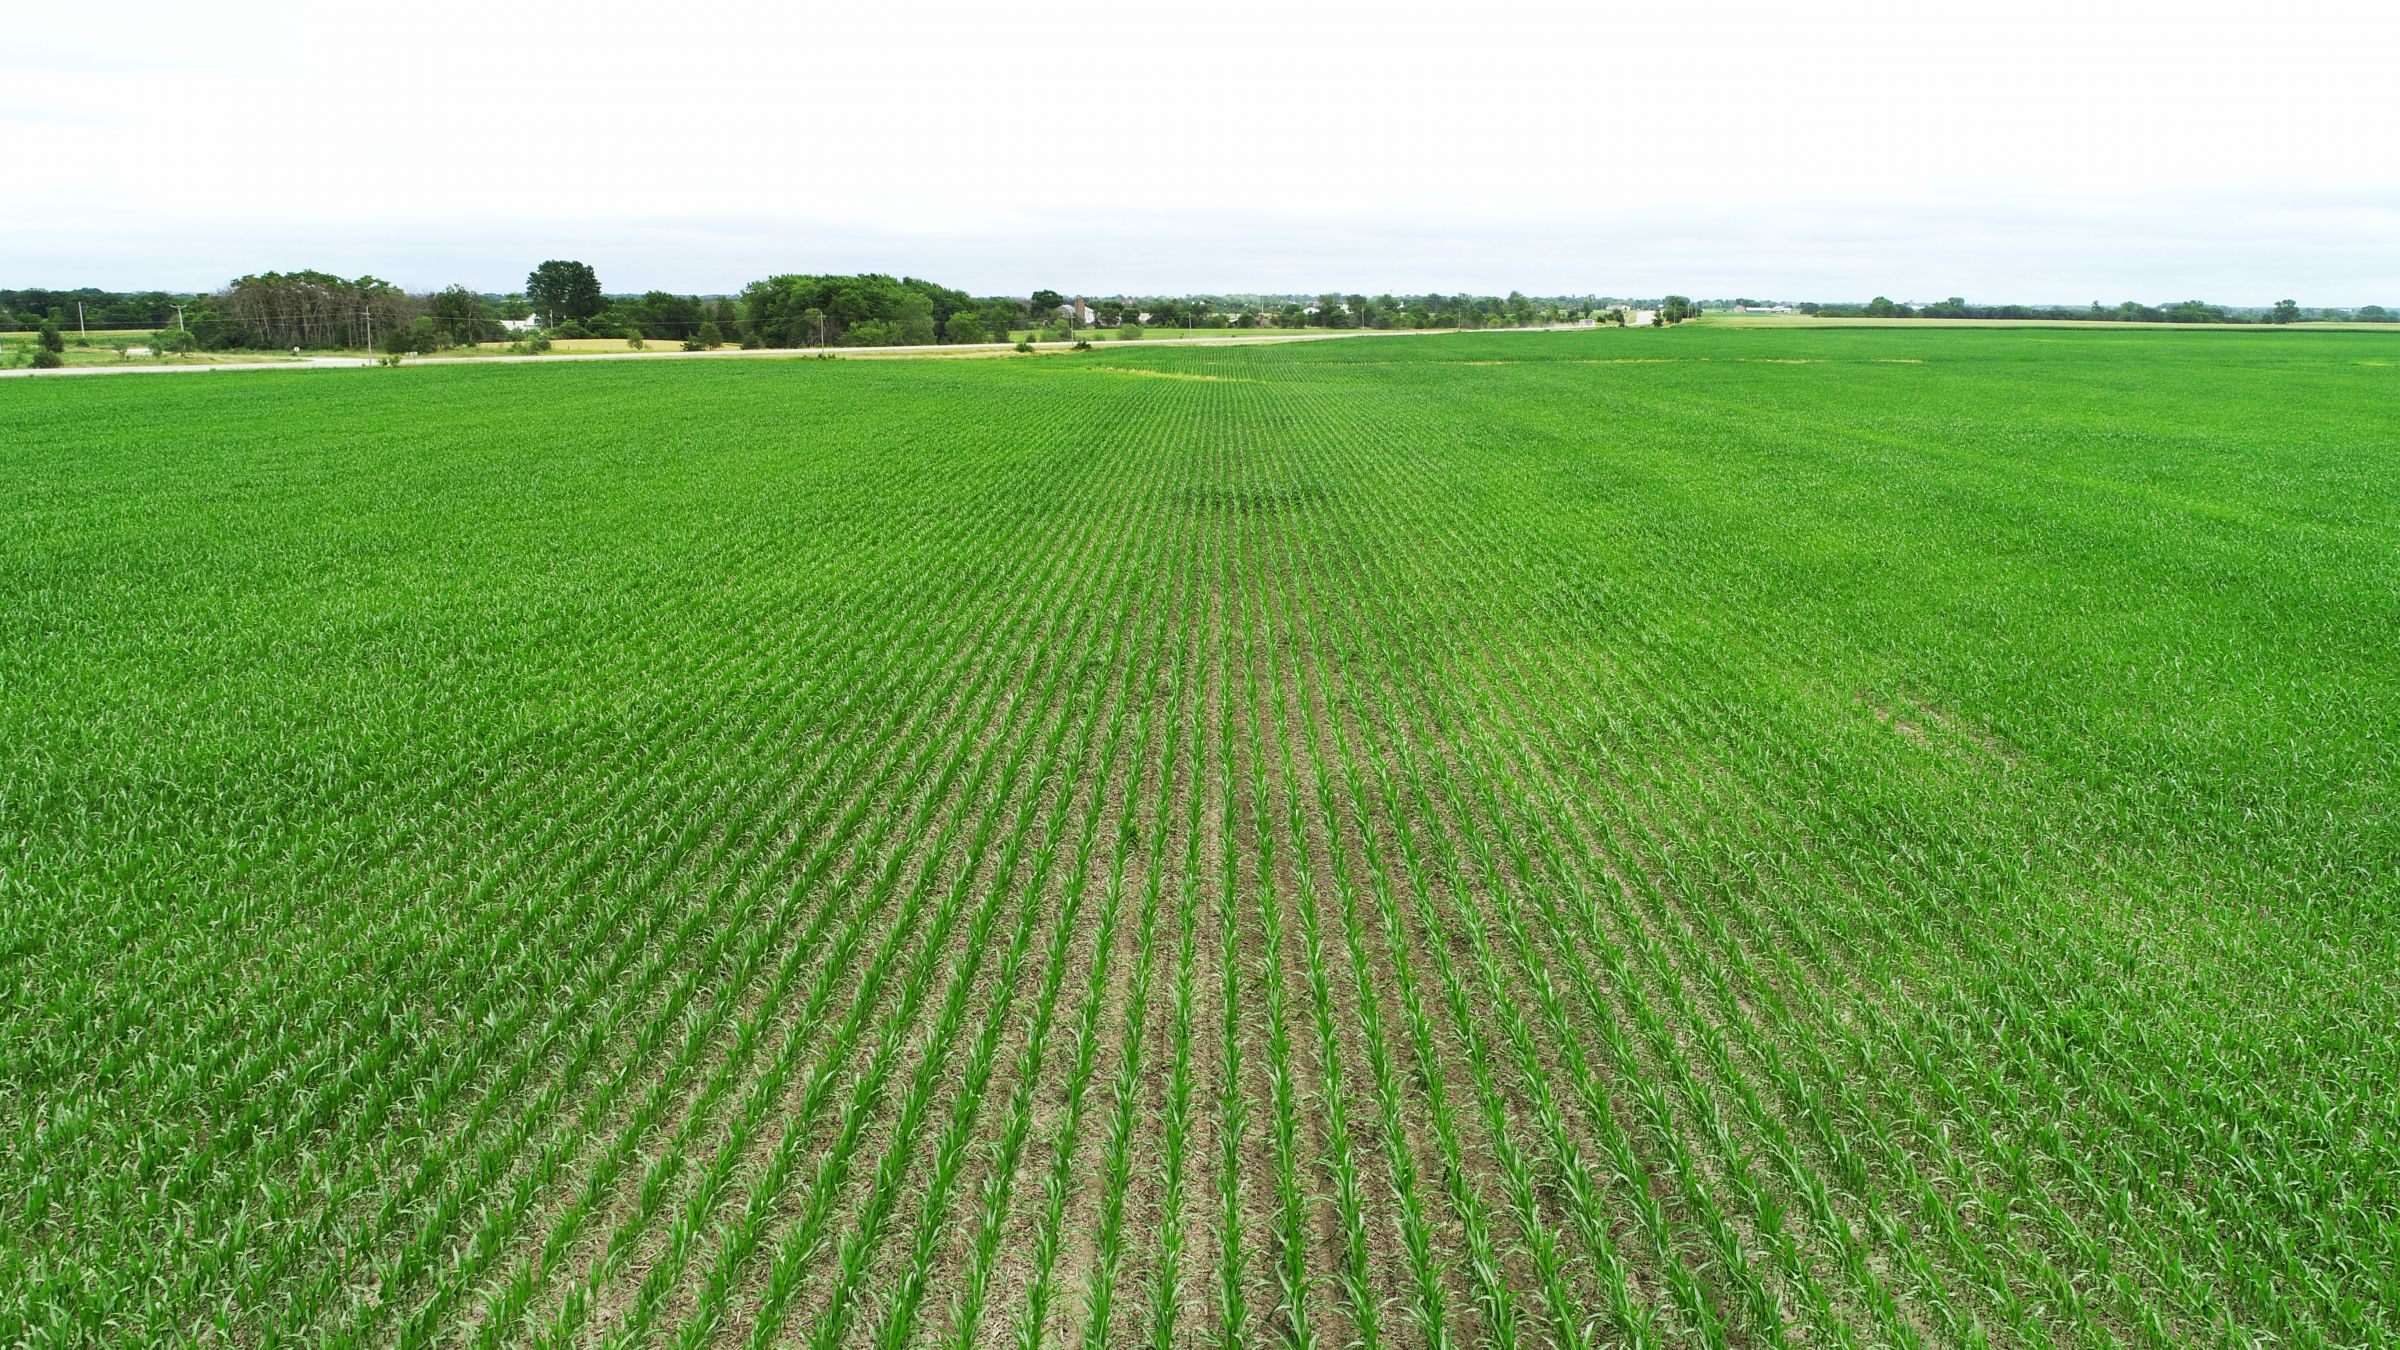 land-davis-county-iowa-1042-acres-listing-number-15349-7-2021-02-03-212244.jpg